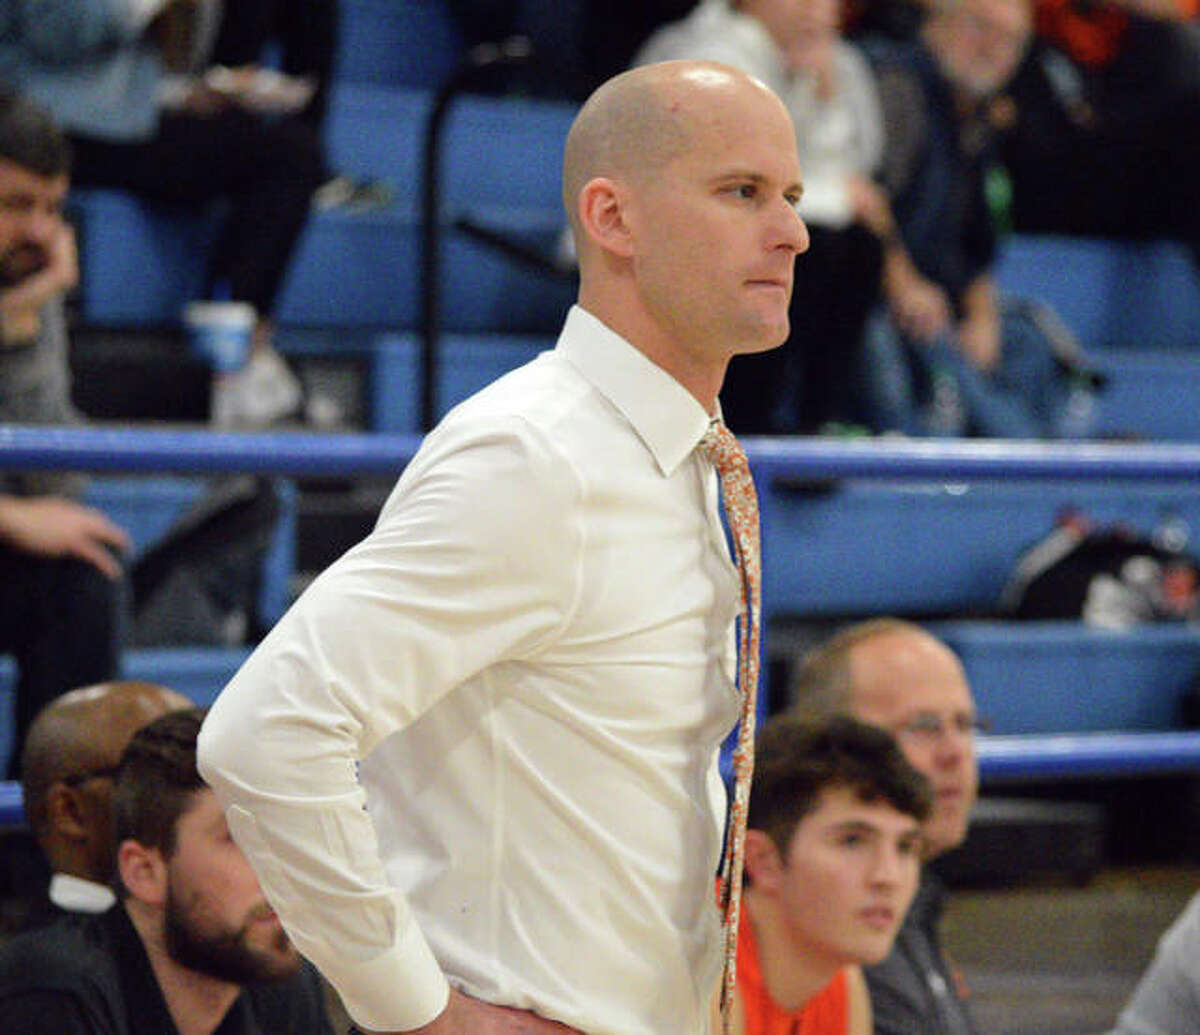 Edwardsville coach Dustin Battas watches the action during Saturday's non-conference game at Freeburg. Battas said EHS contacted about 70 schools in an attempt to fill seven openings on its non-conference schedule.